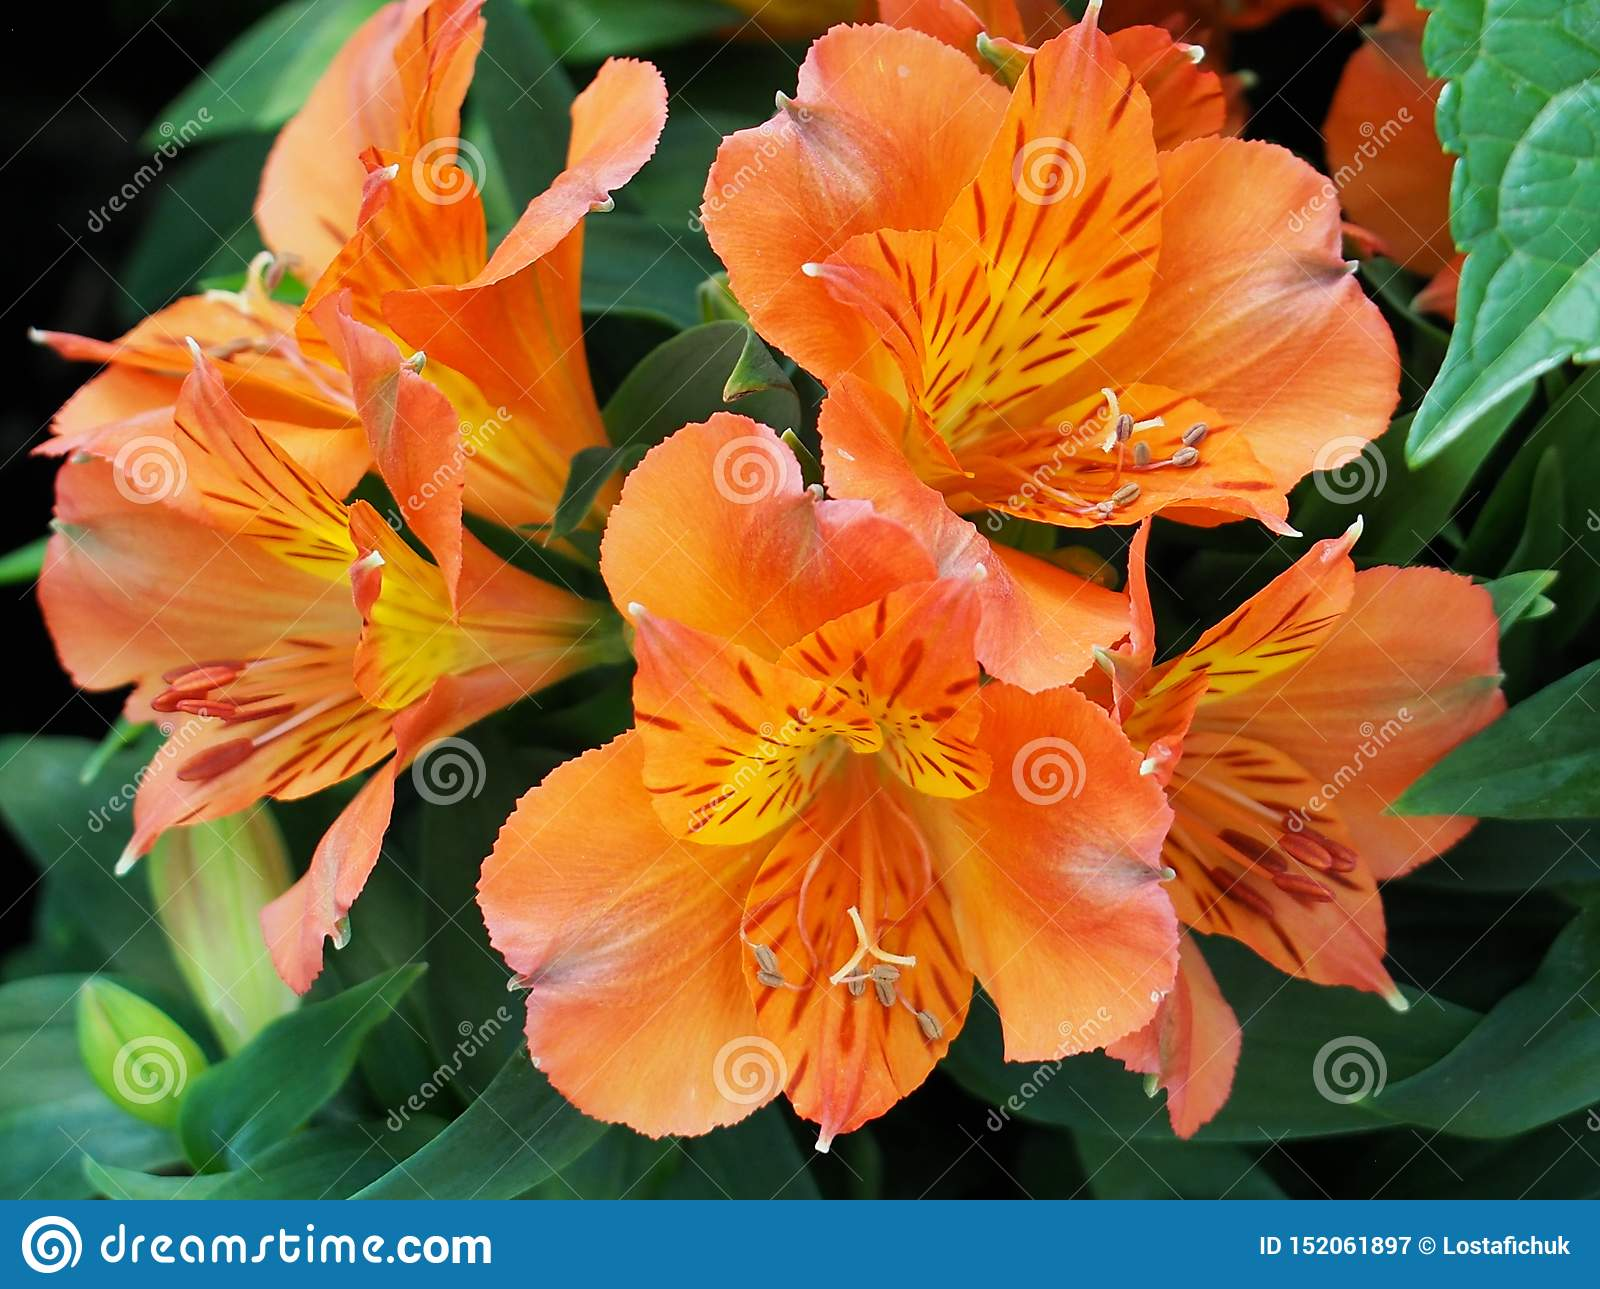 Alstromeria anaranjado o Lily In Bloom peruana